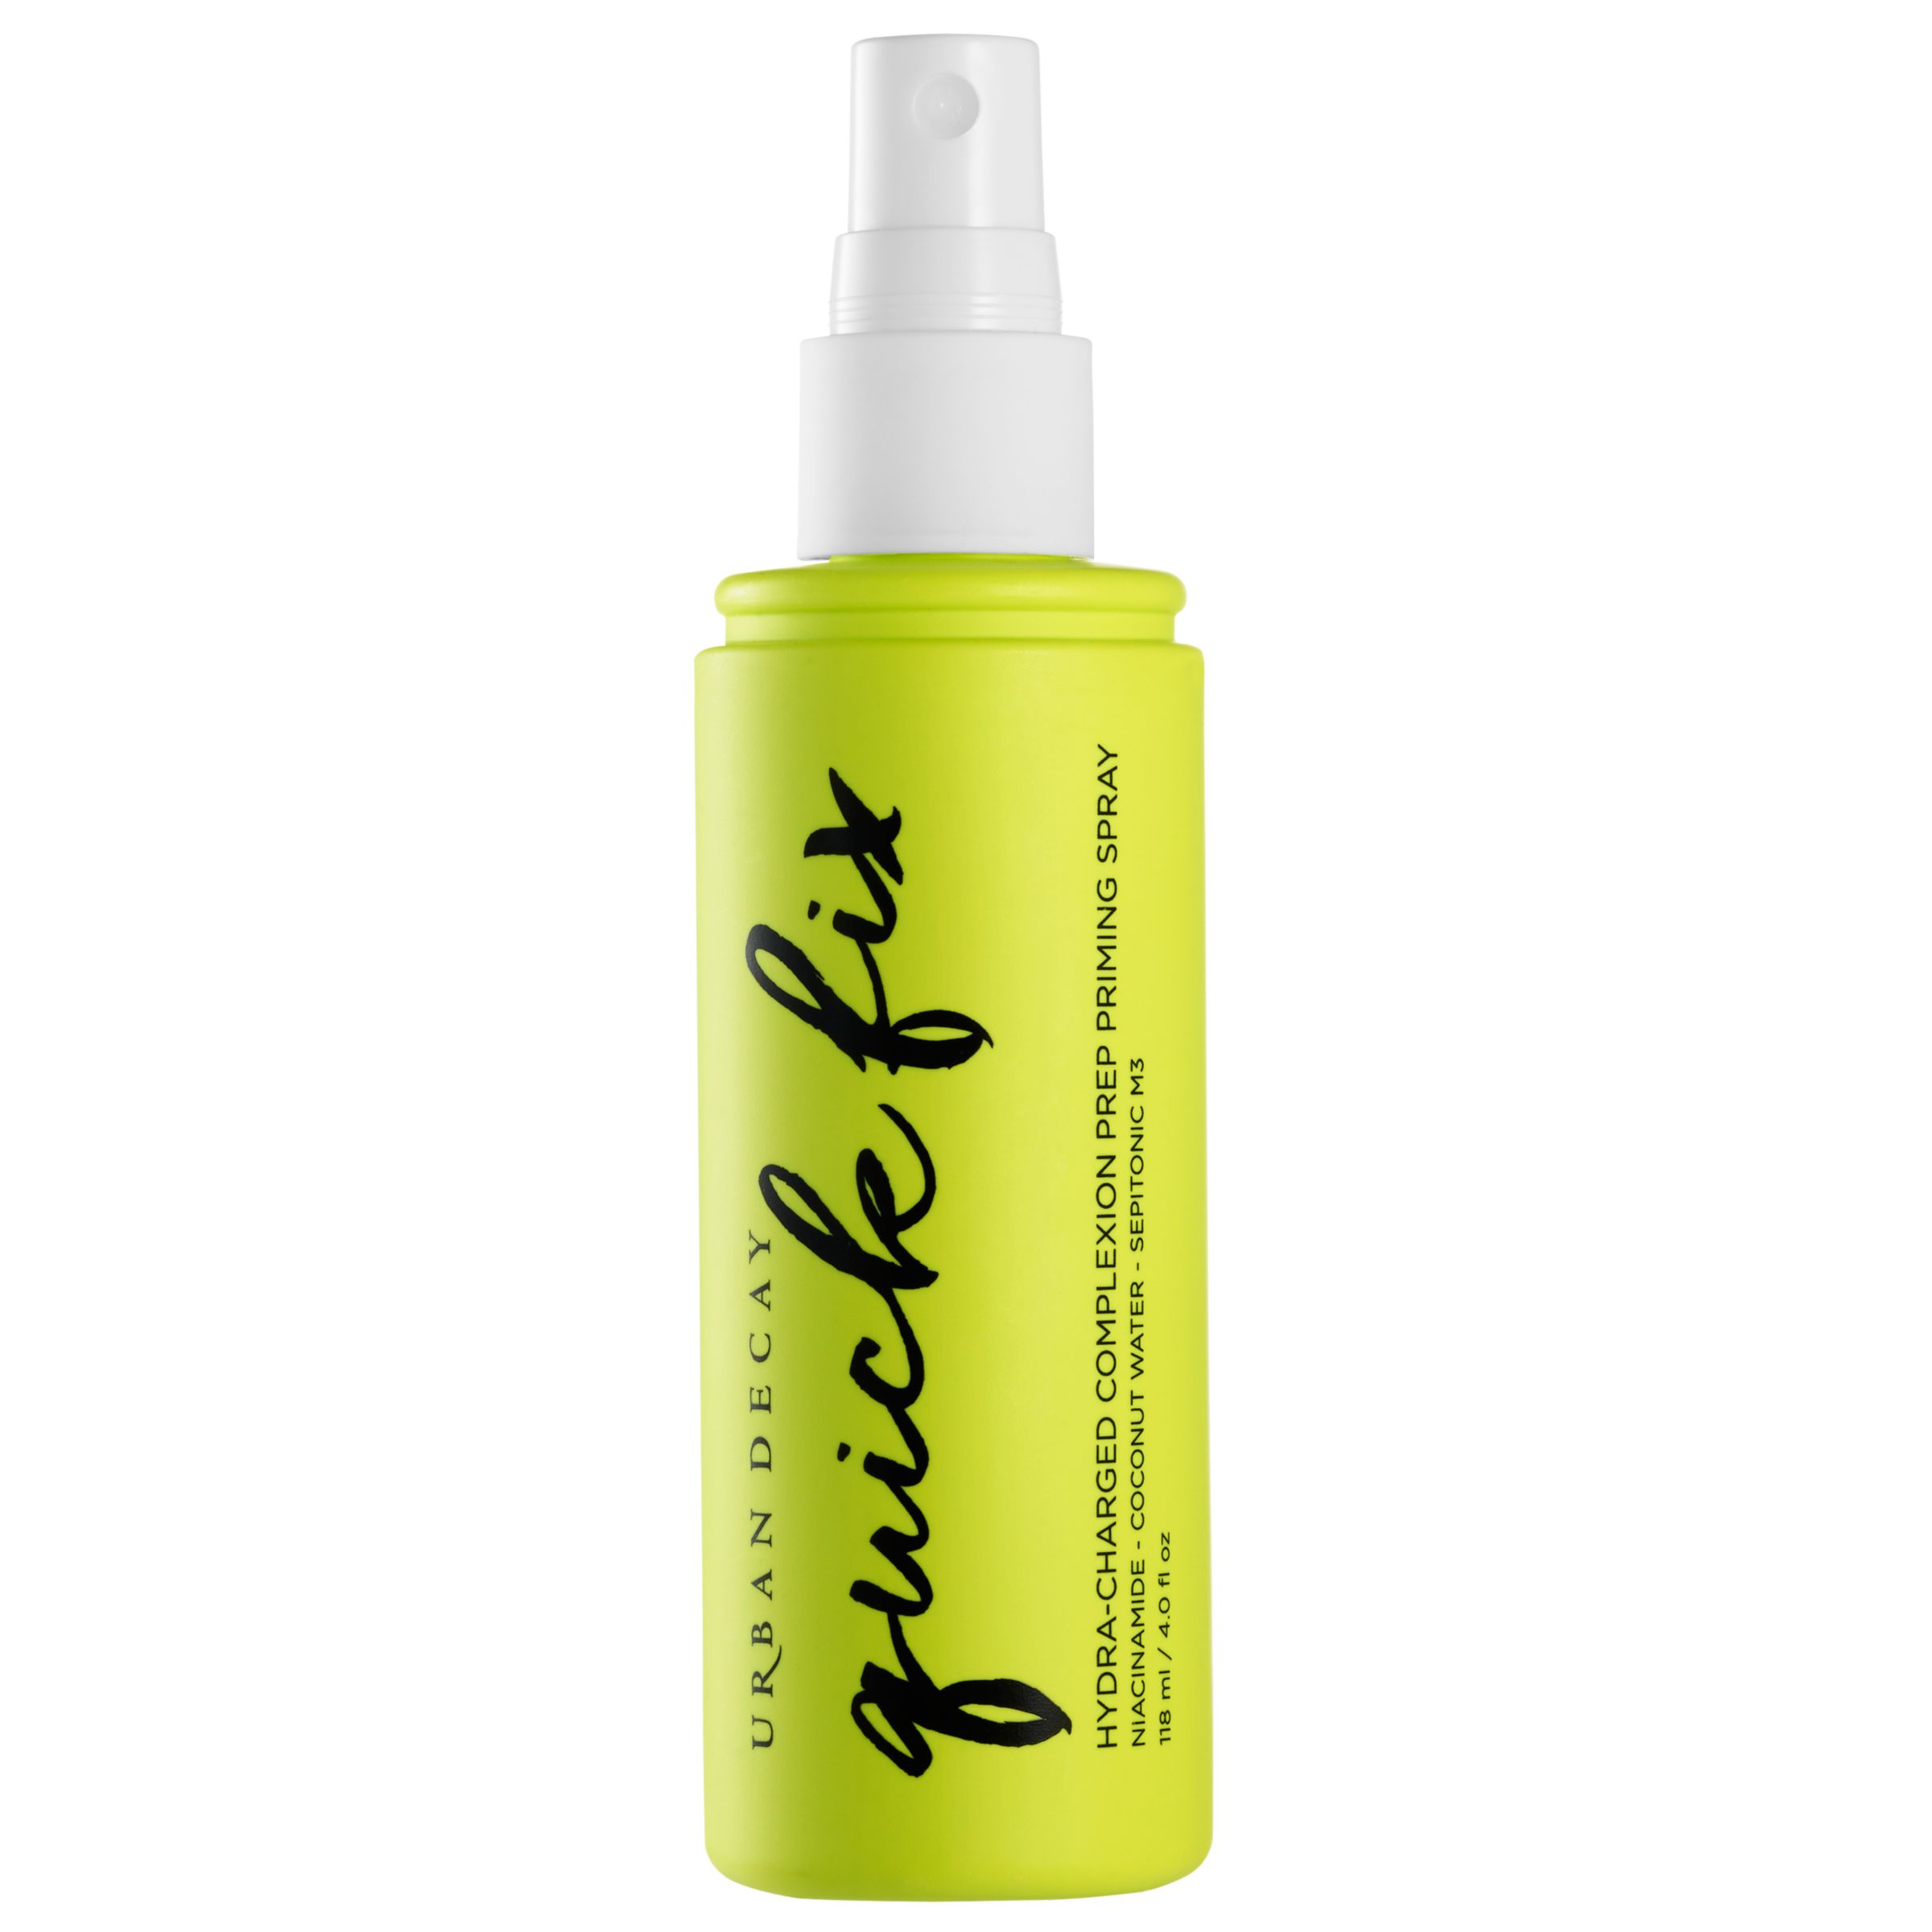 Urban Decay Urban Decay Quick Fix Hydra-Charged Complexion Prep Spray